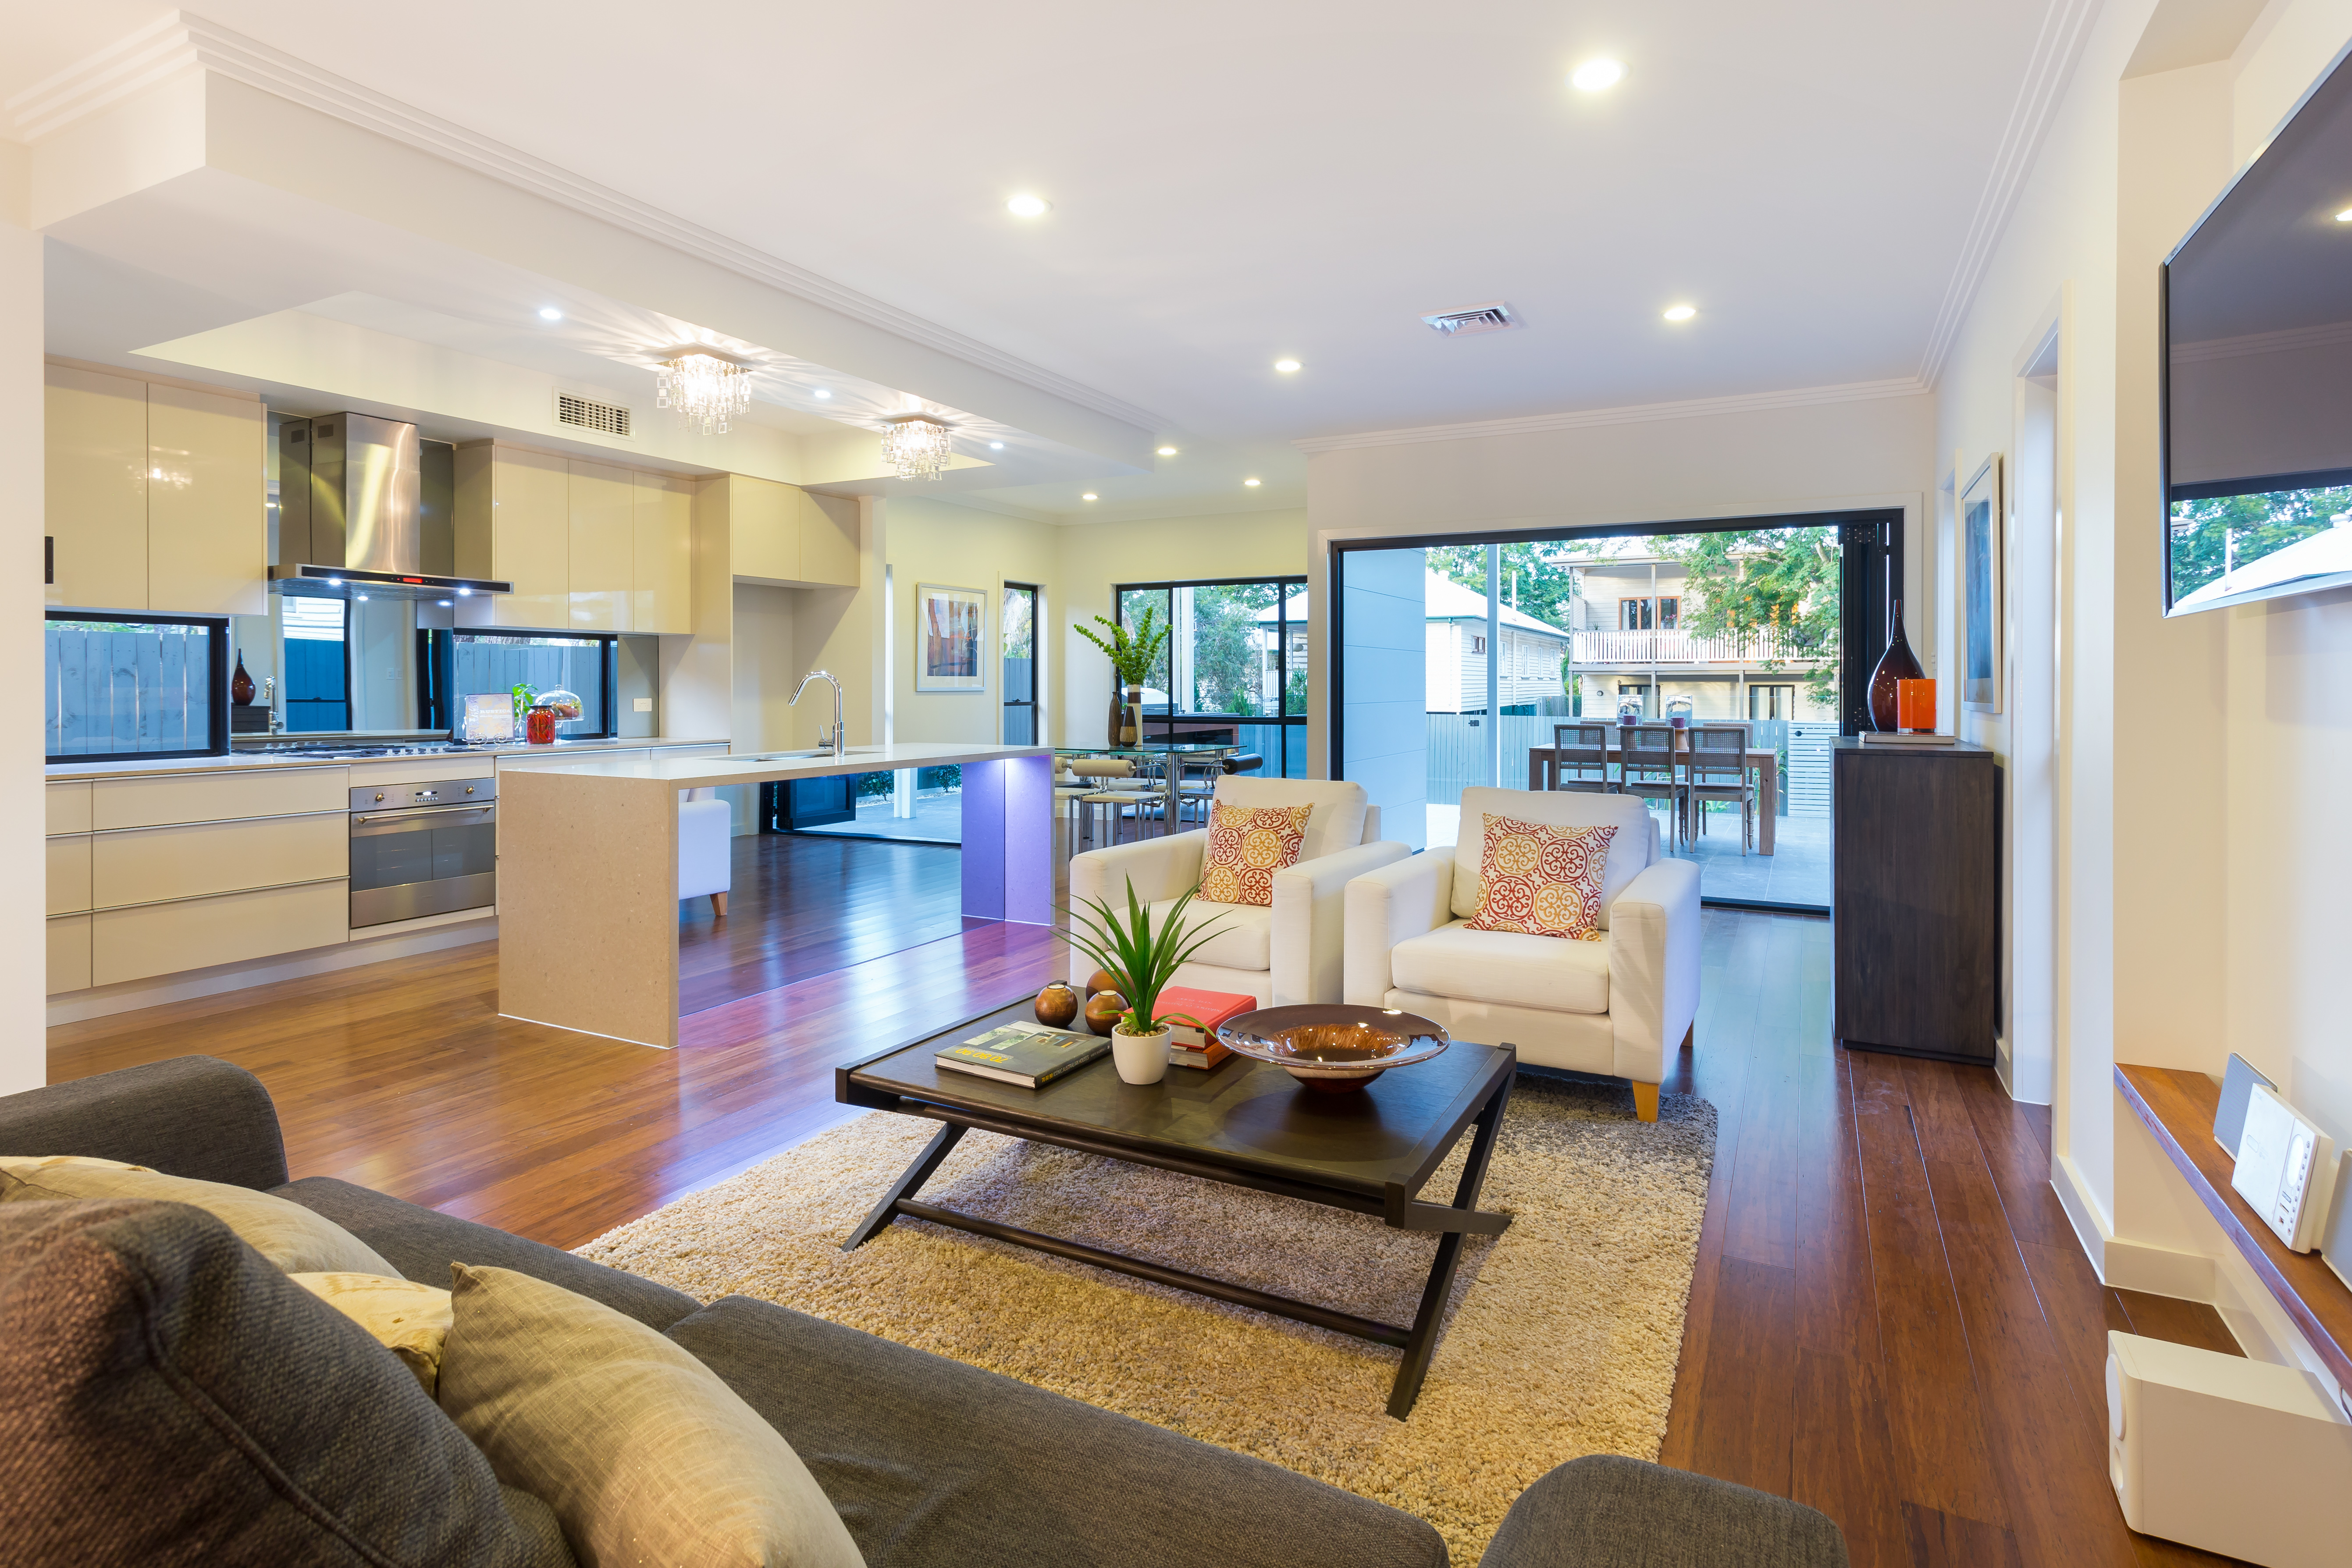 98 Oxley Road, Graceville living room